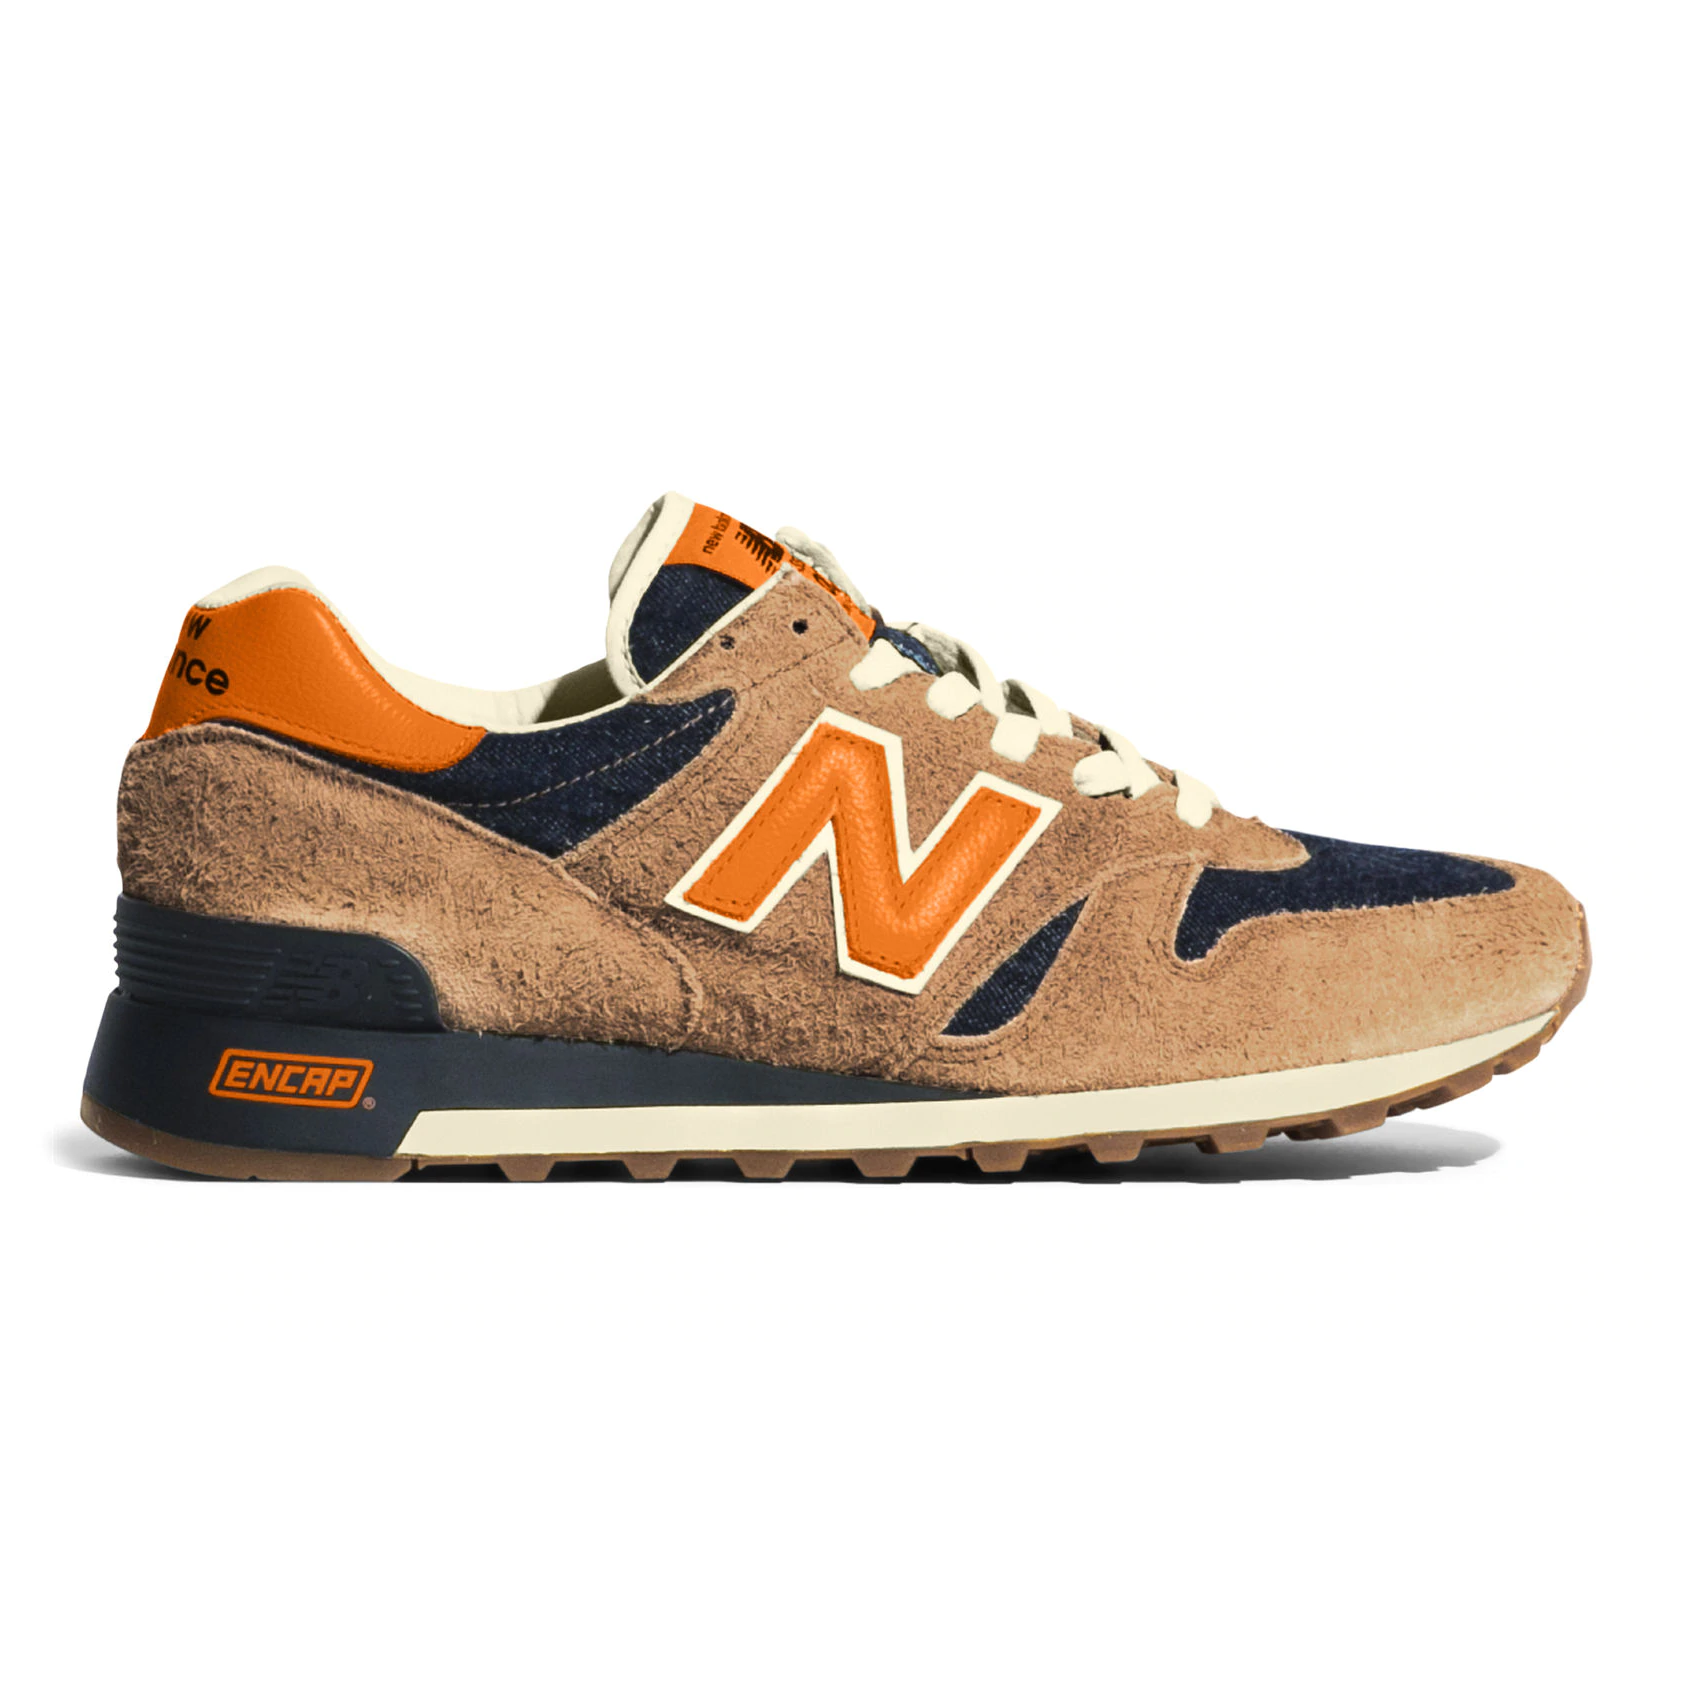 Levi's x New Balance M1300LV – Made in the USA}